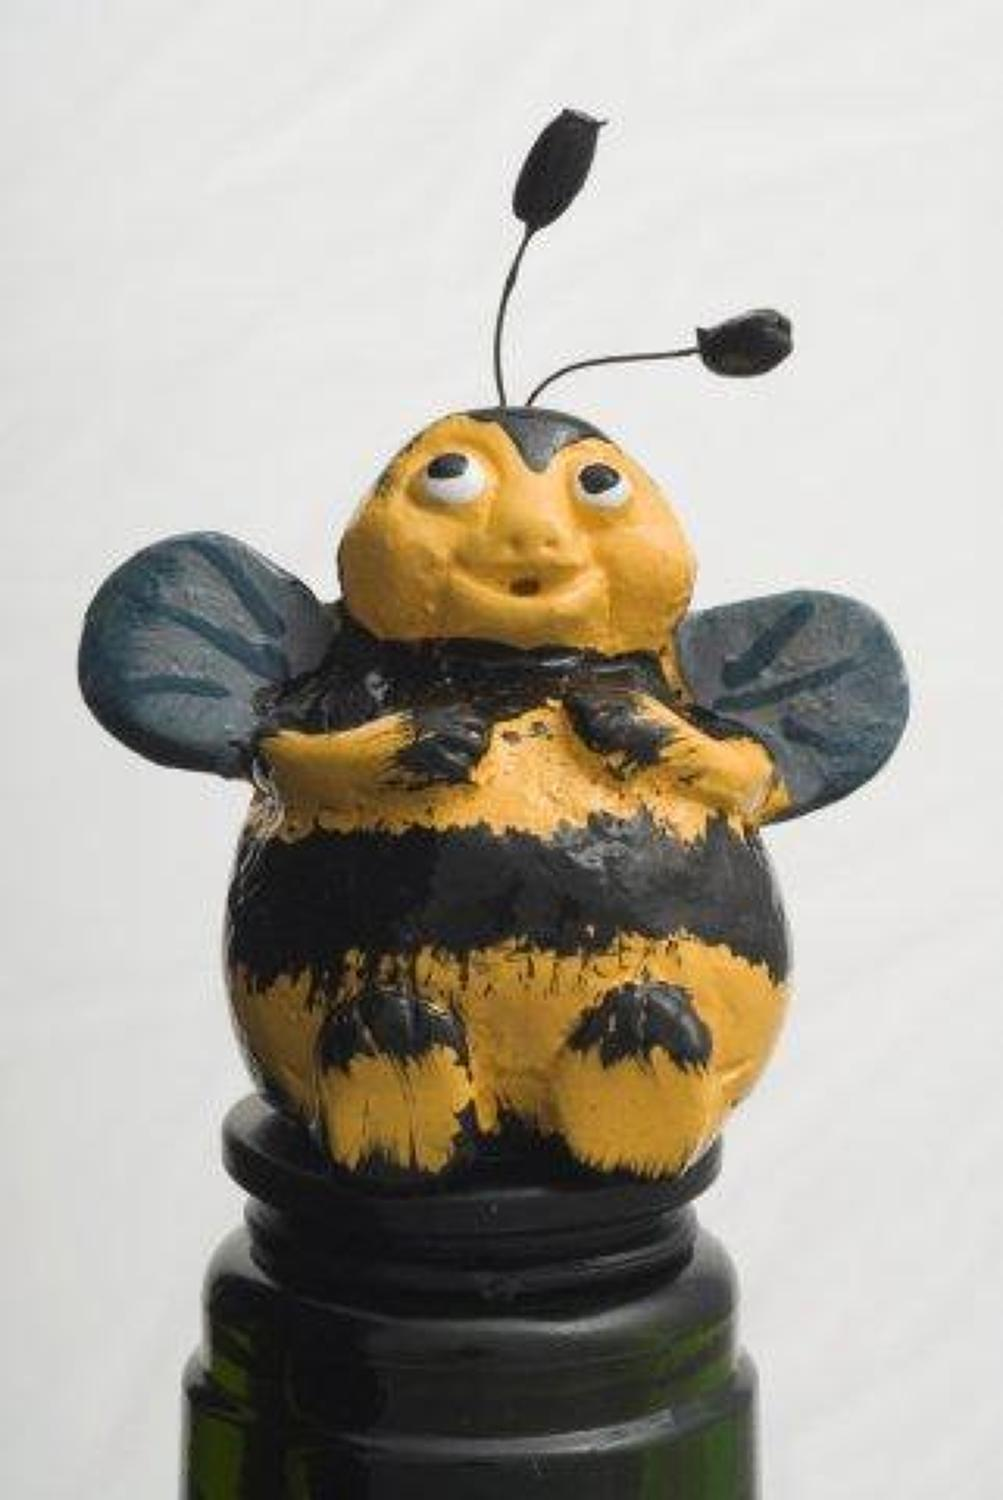 Bee bottle stopper